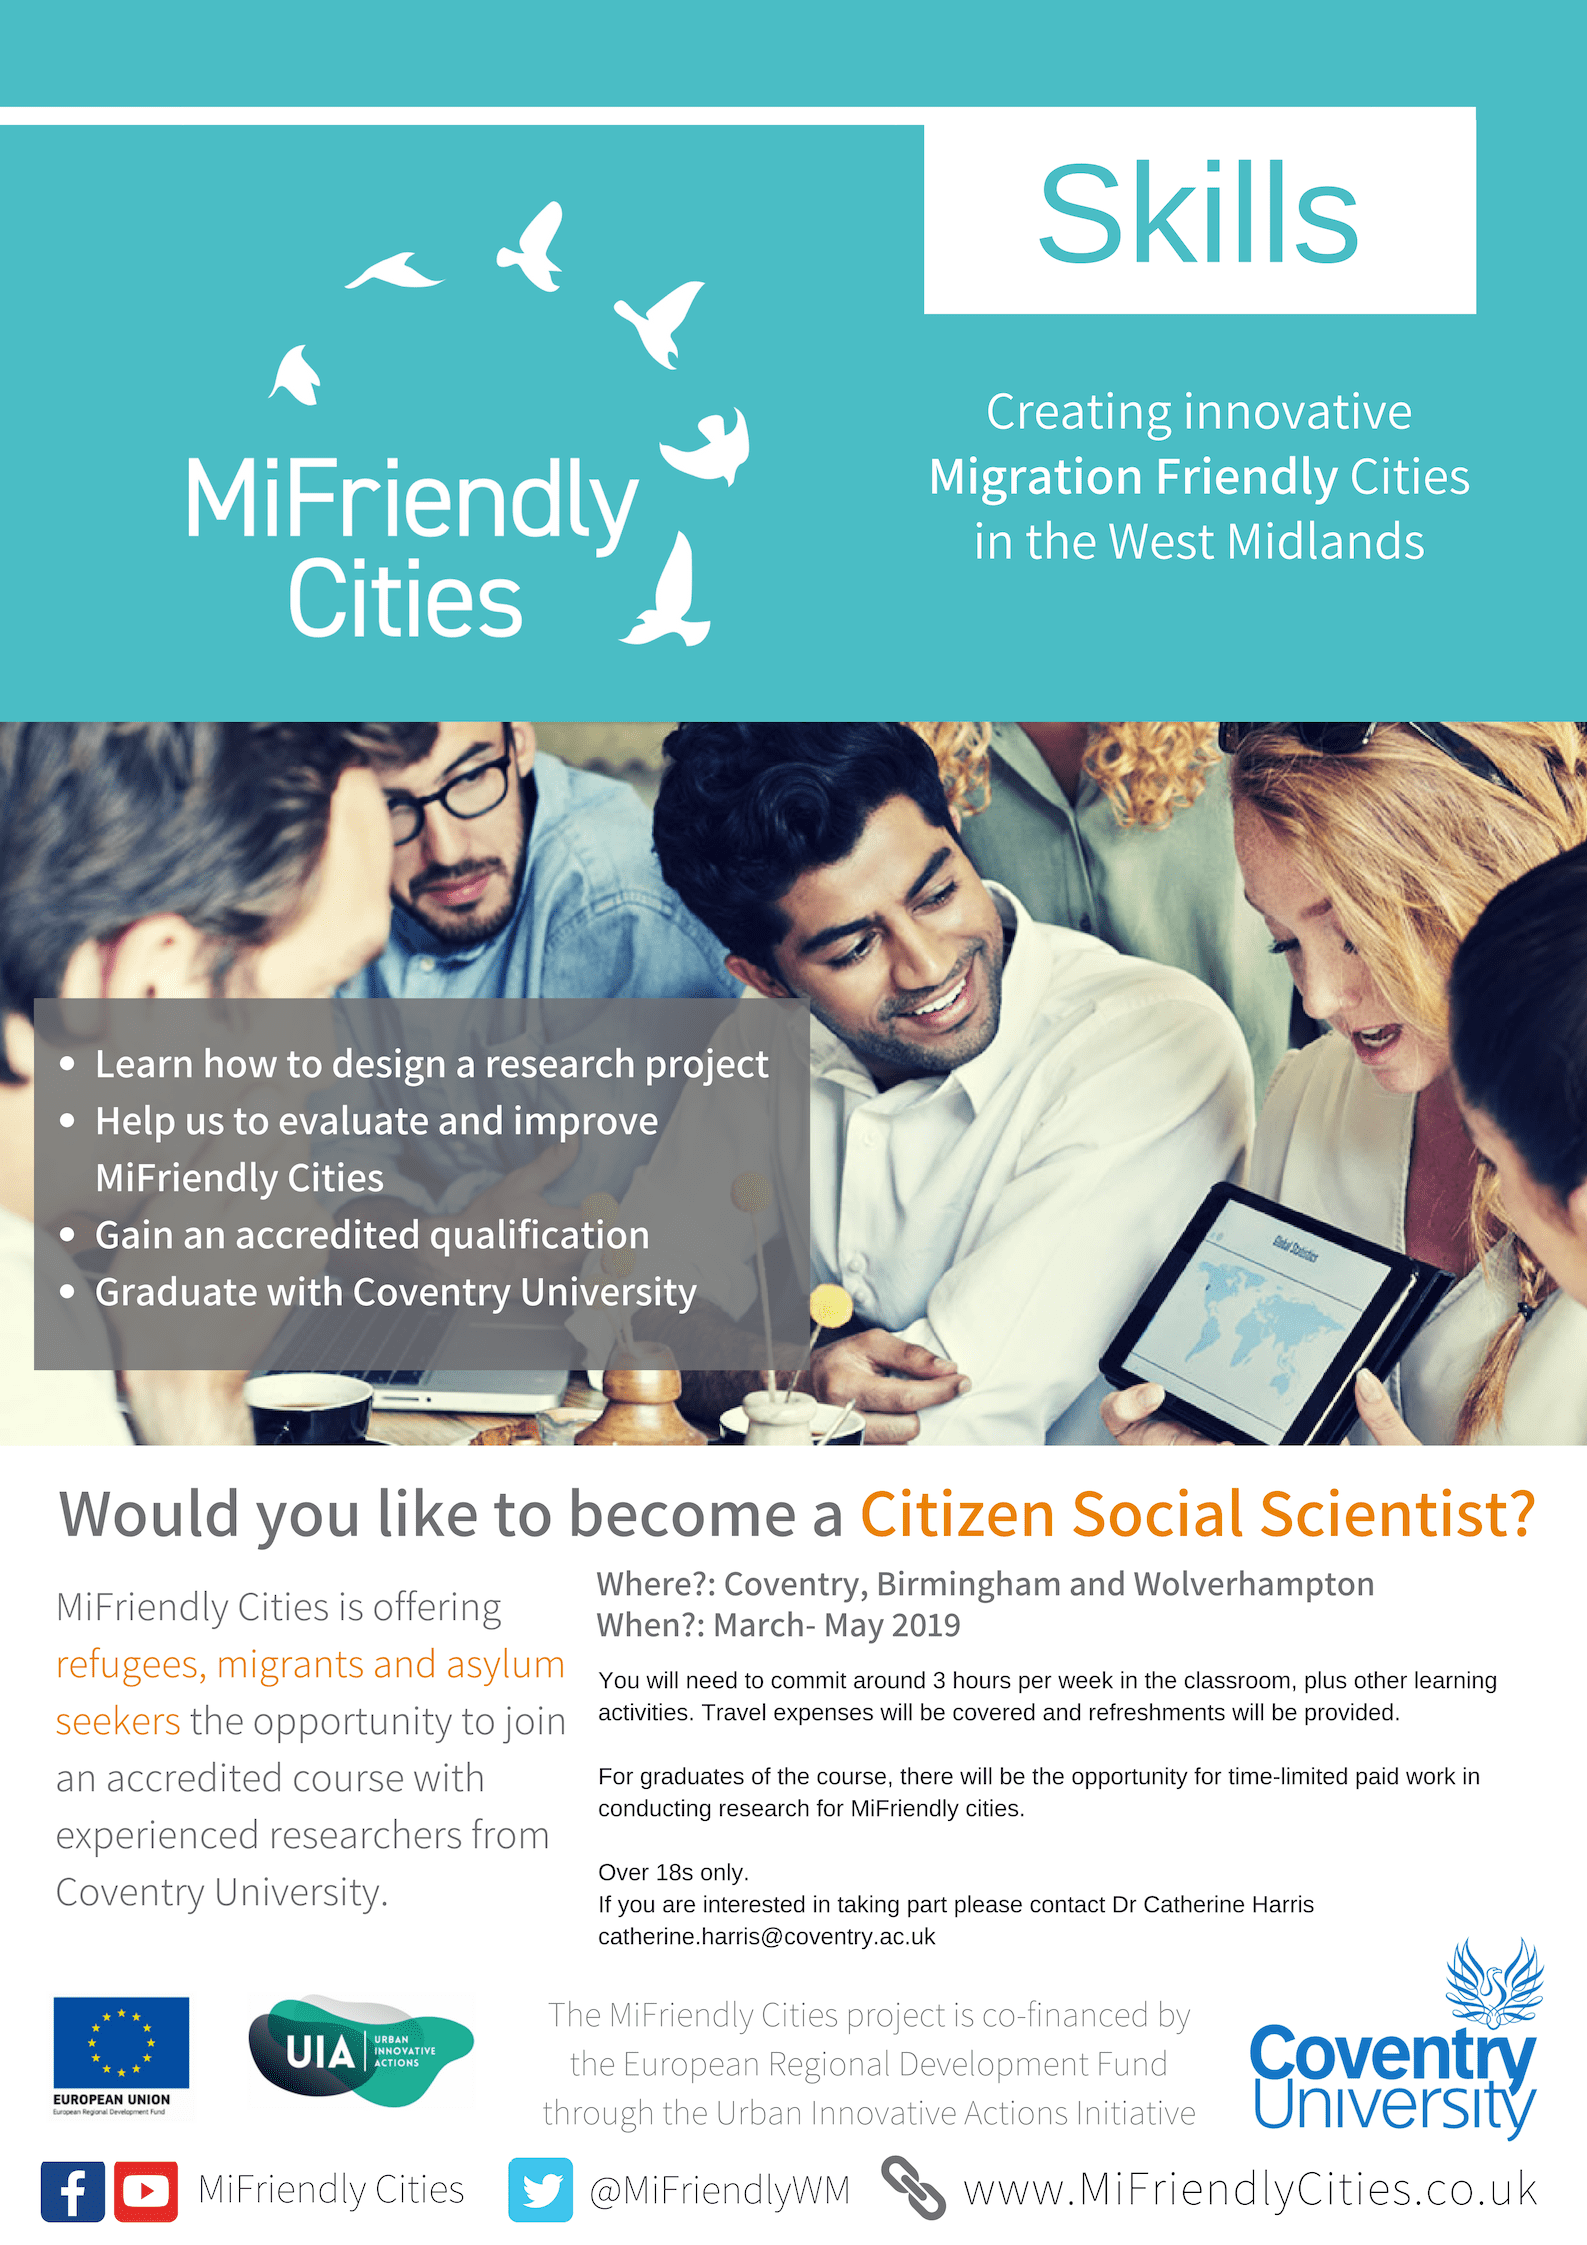 https://mifriendlycities.co.uk/wp-content/uploads/2018/12/CSS-flyer-1-min.png